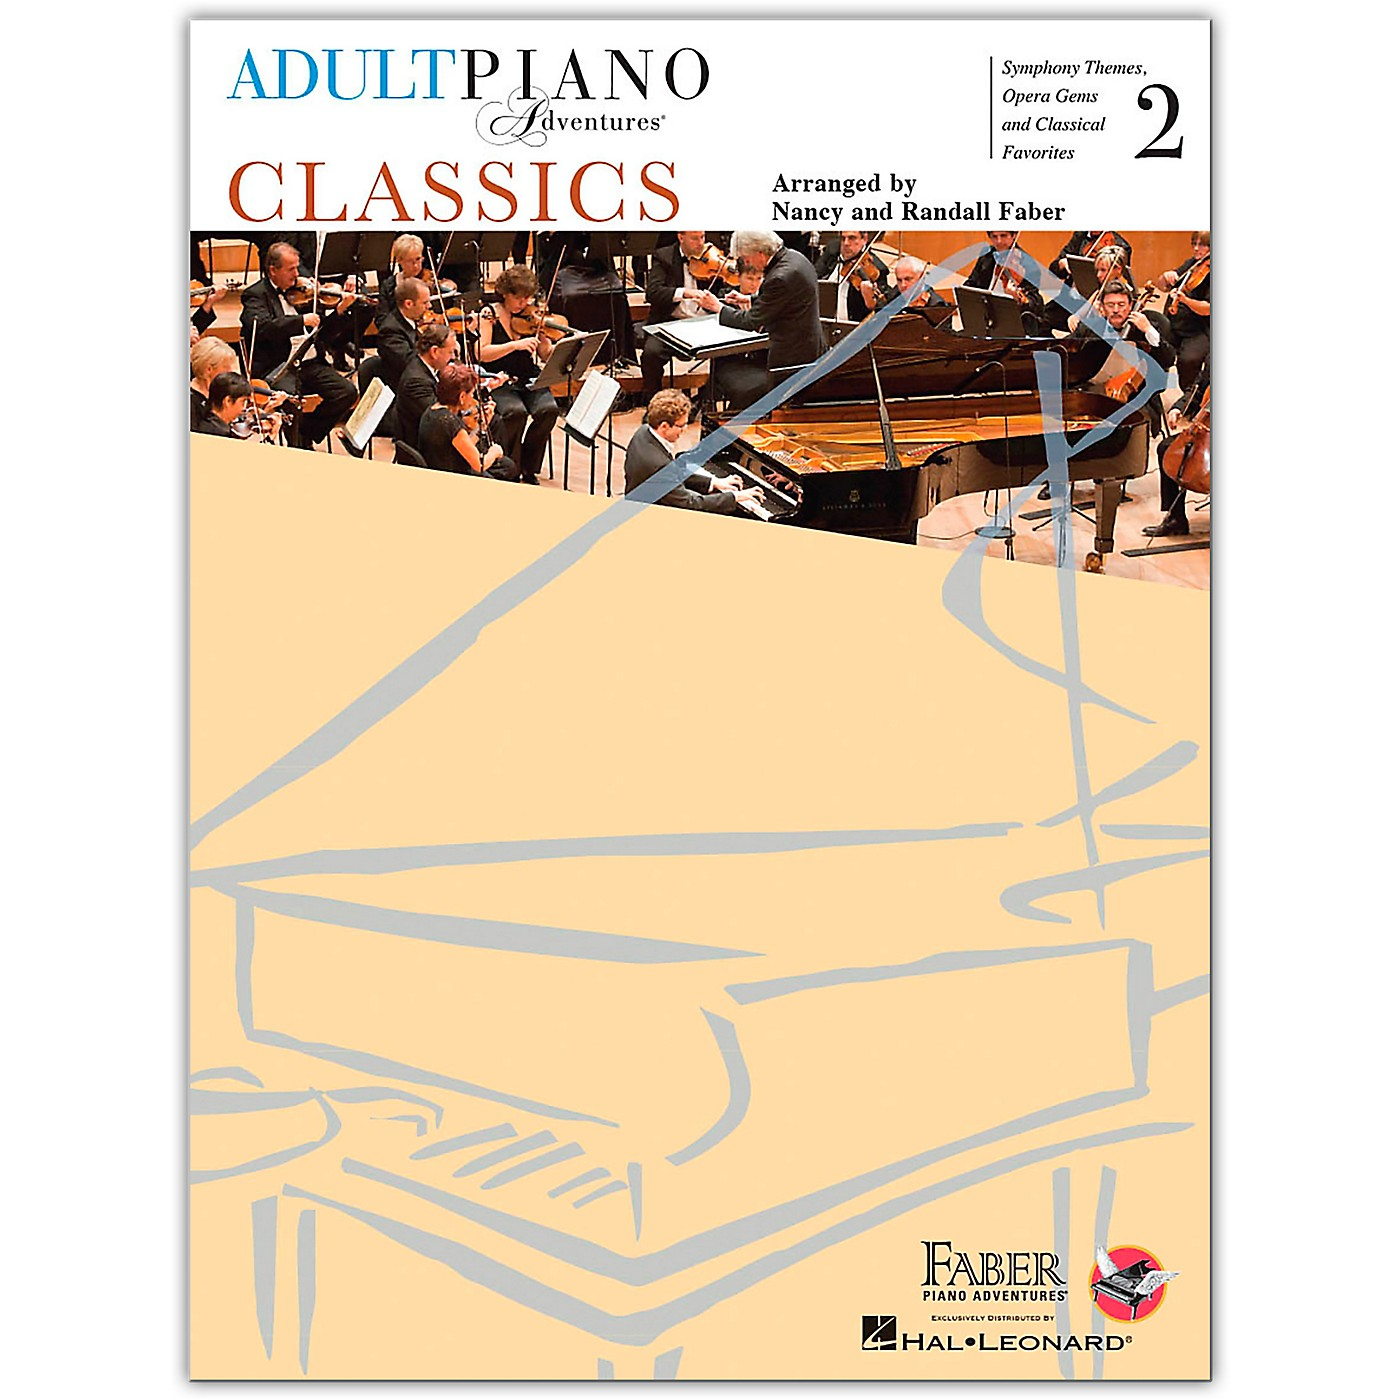 Faber Piano Adventures Adult Piano Adventures Classics Book 2 Faber Piano Adventures Series Softcover thumbnail